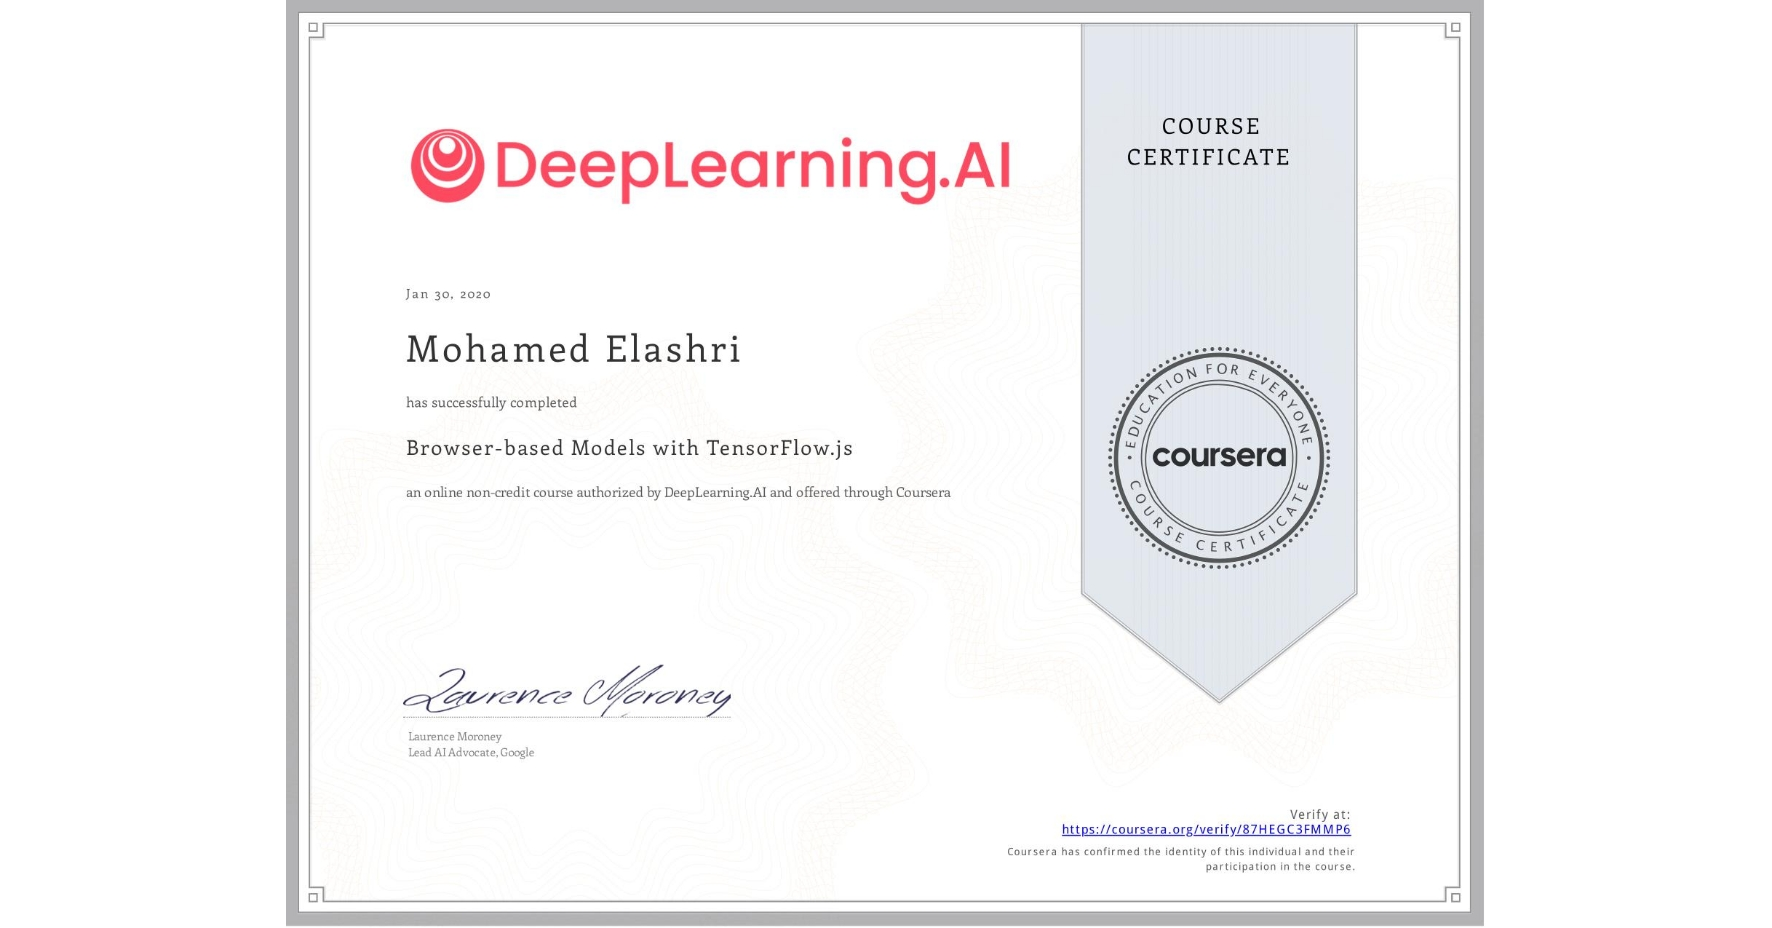 View certificate for Mohamed Elashri, Browser-based Models with TensorFlow.js, an online non-credit course authorized by DeepLearning.AI and offered through Coursera